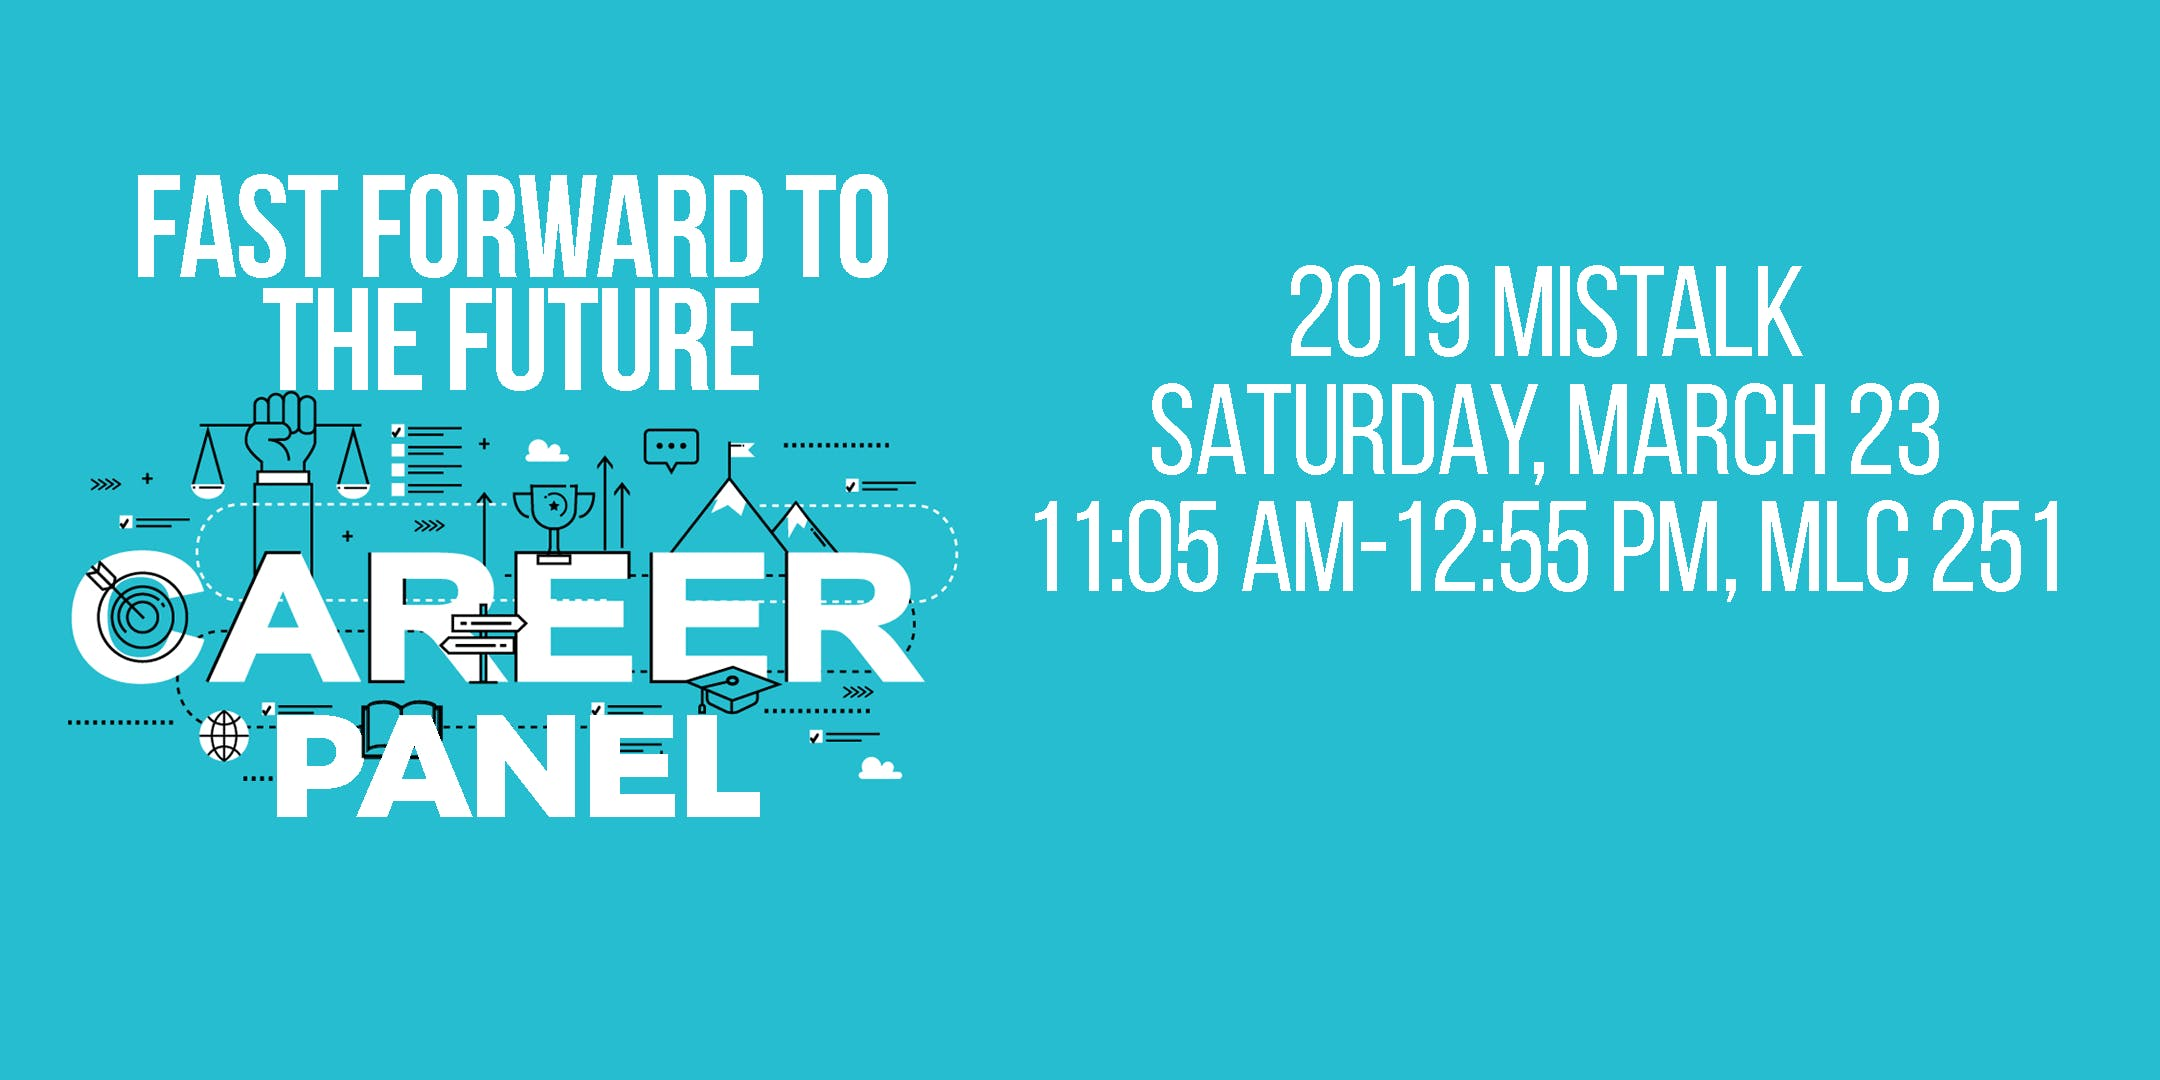 Fast Forward to the Future - Career Panel